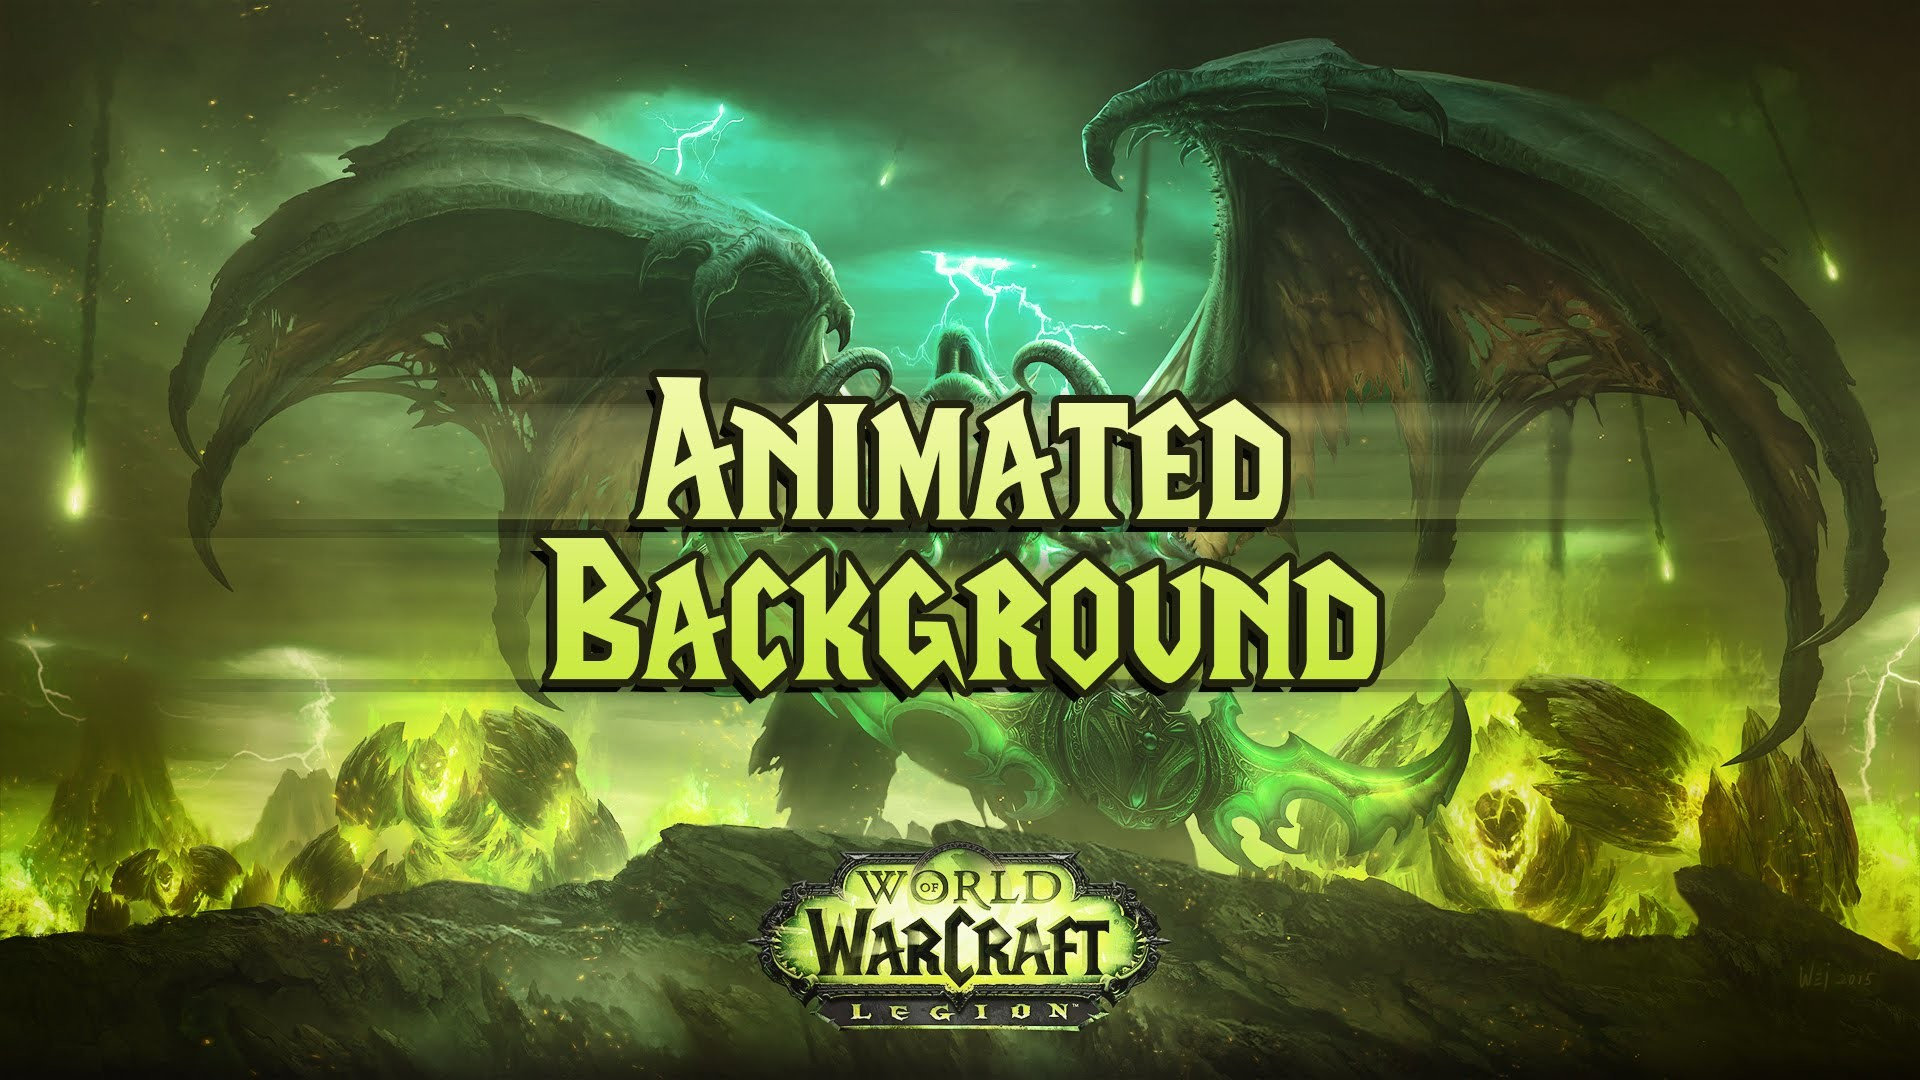 1920x1080 WoW Legion Animated Background [Download link in description]